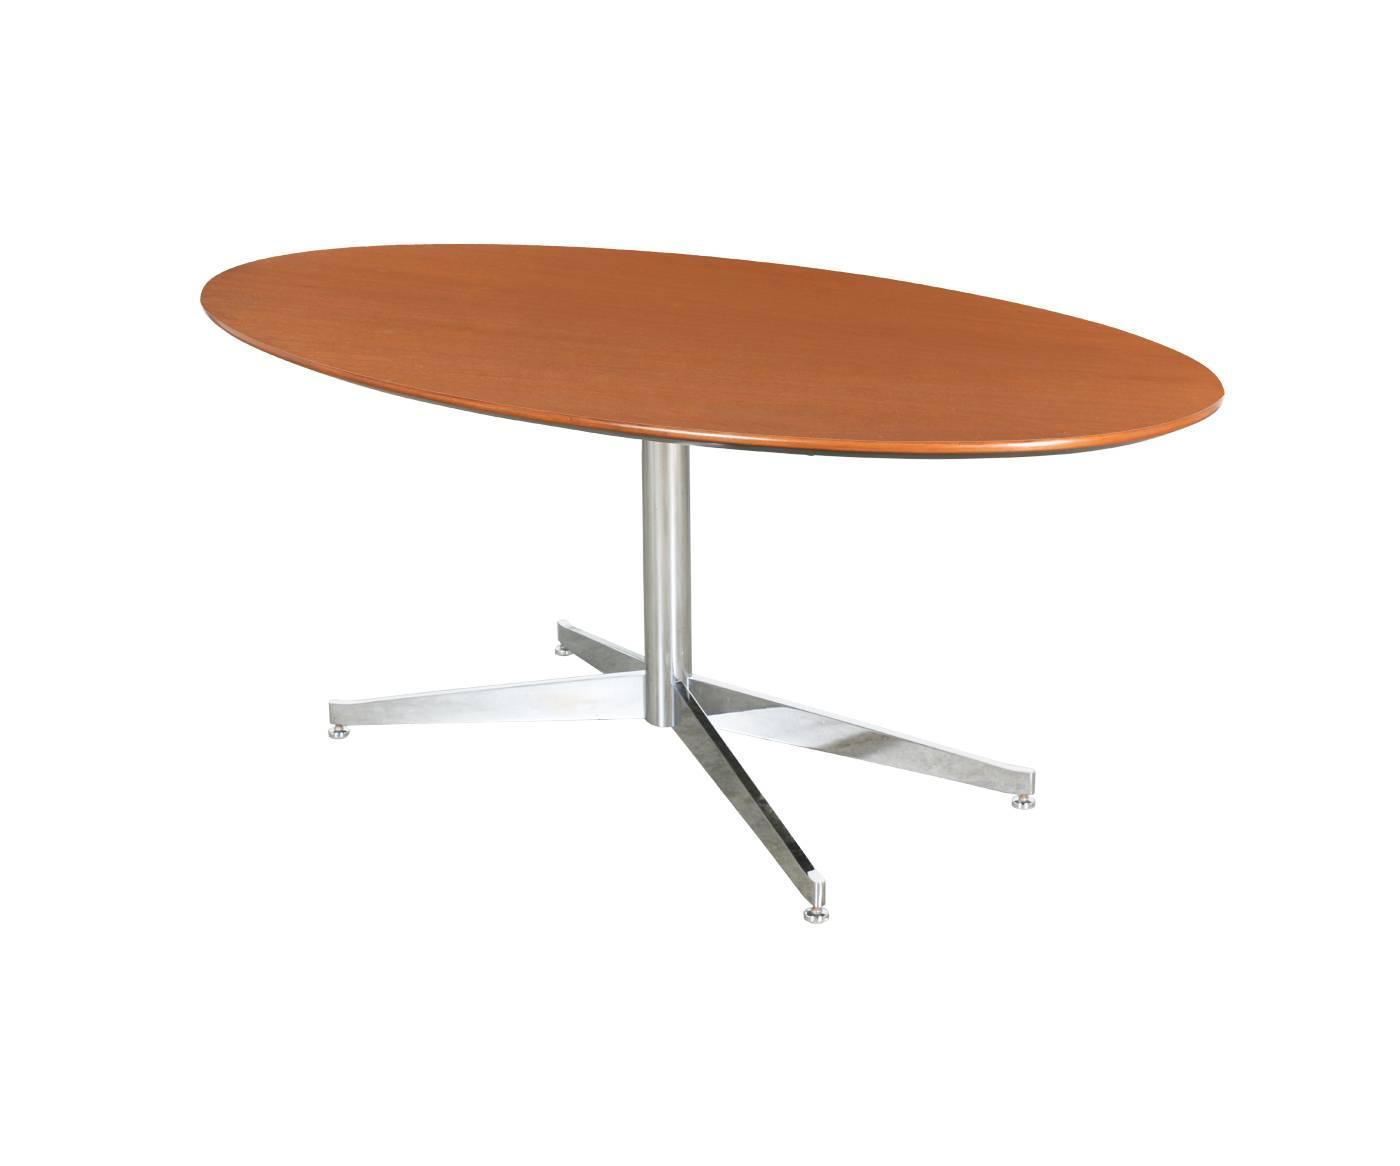 Knoll Oval Walnut Dining Table With Chrome Base For Sale At 1stdibs